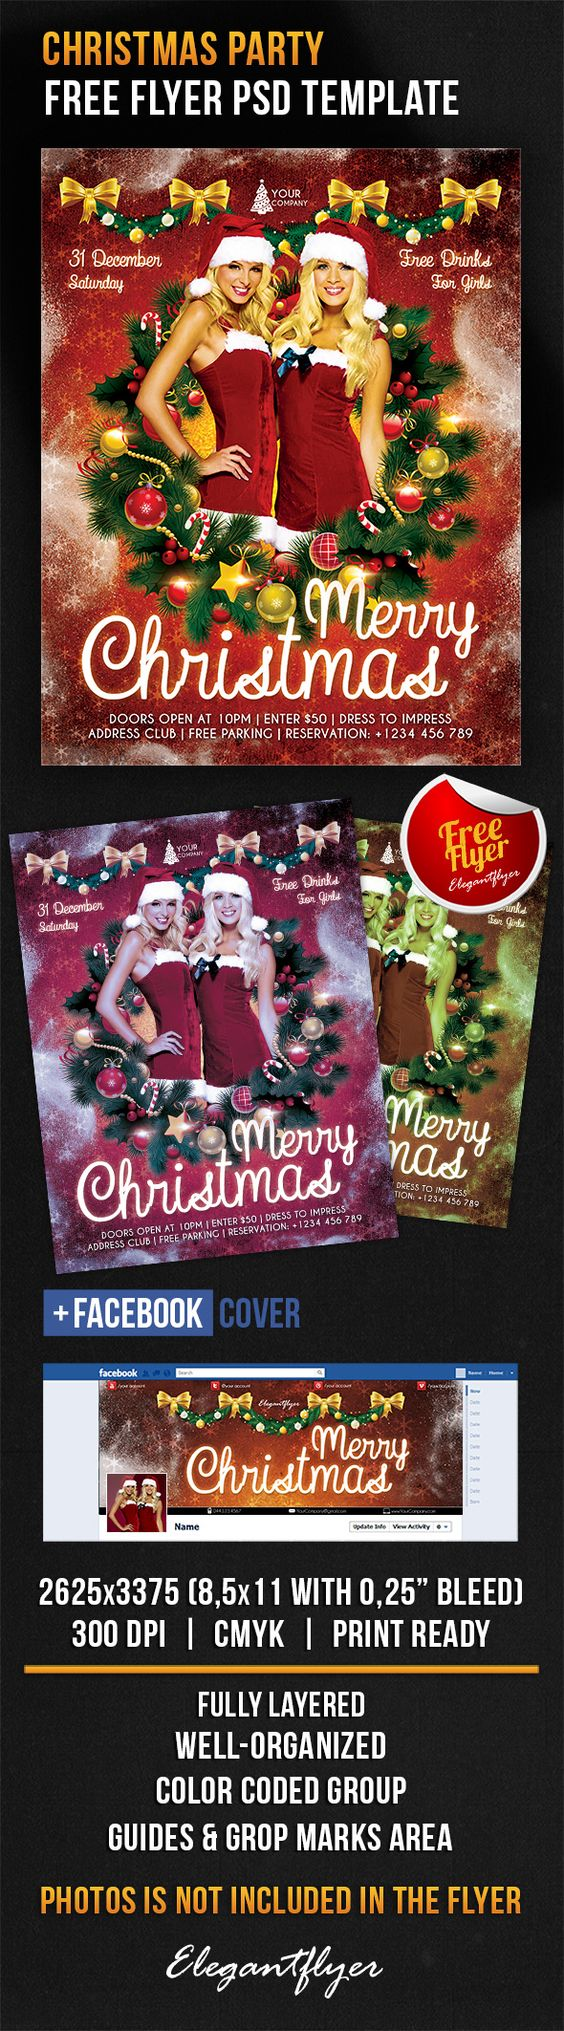 christmas party flyer psd template facebook cover christmas party flyer psd template facebook cover